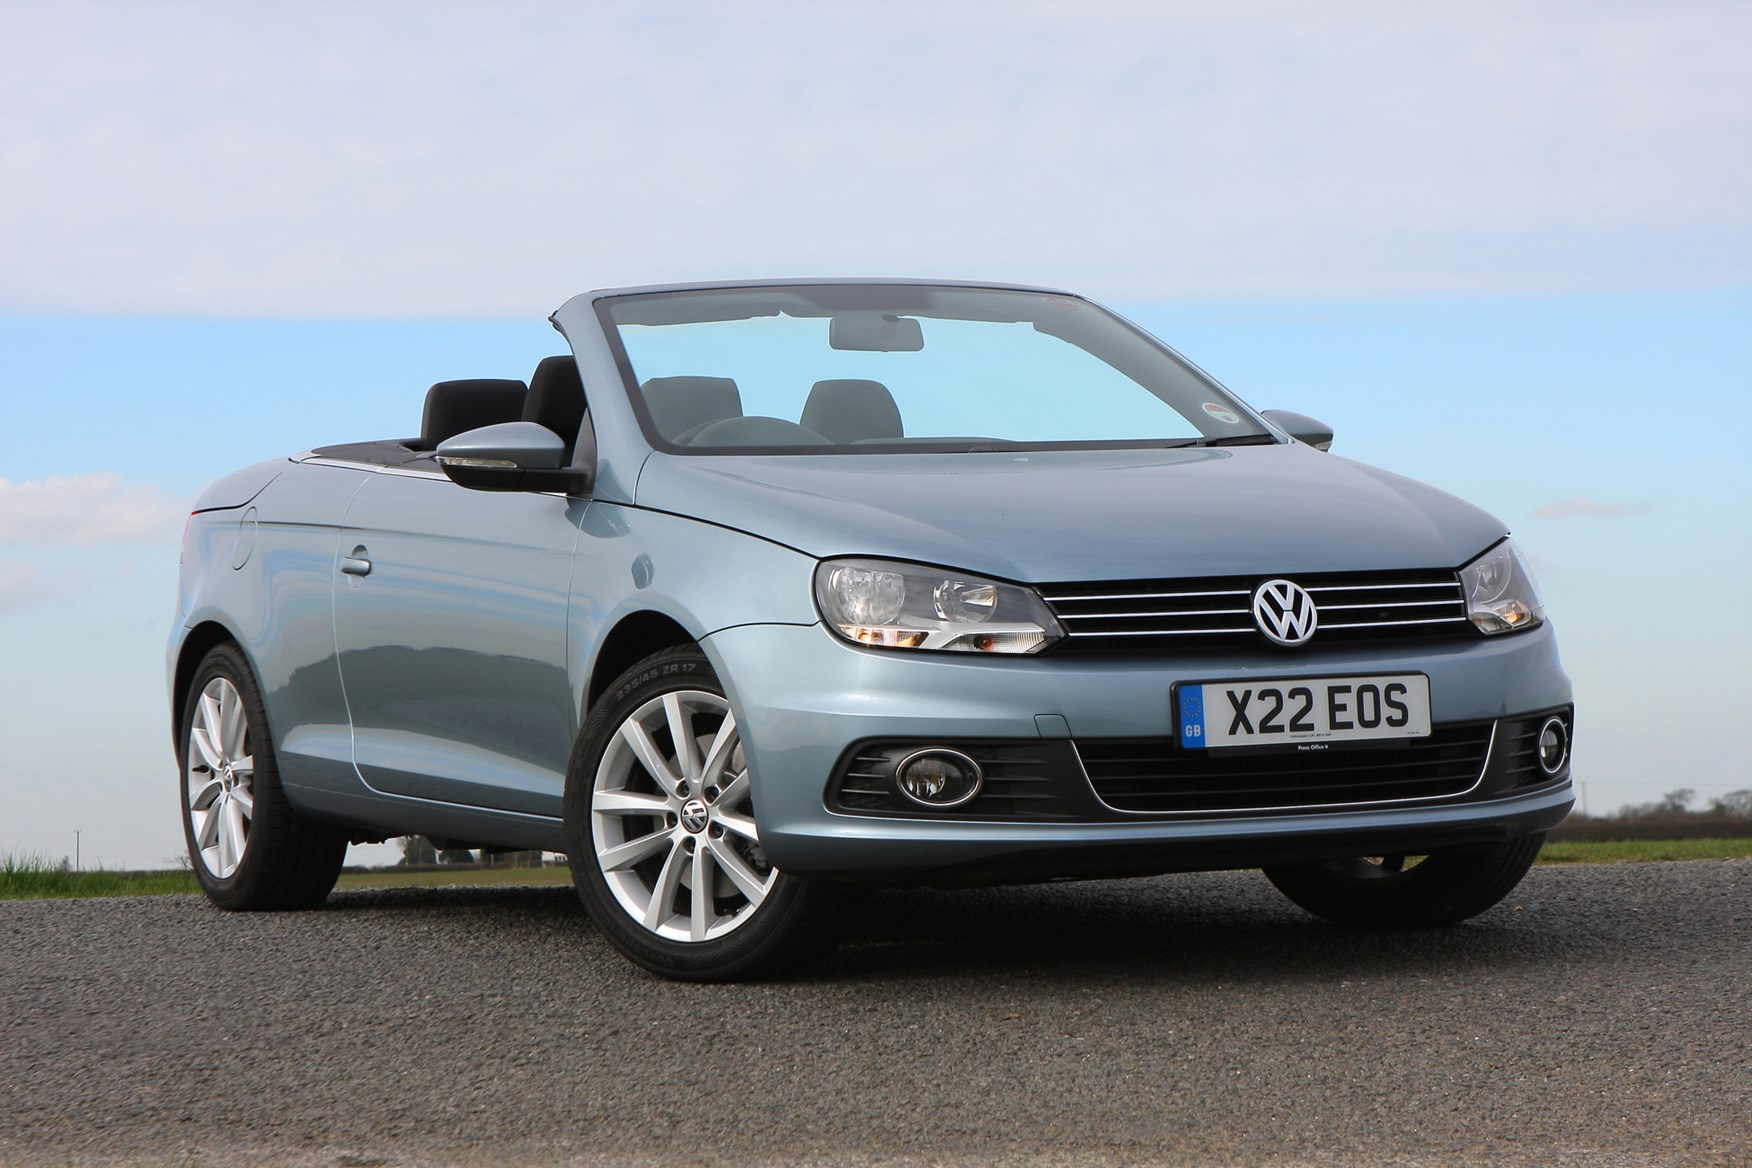 volkswagen eos coupe cabriolet review 2006 2014 parkers. Black Bedroom Furniture Sets. Home Design Ideas